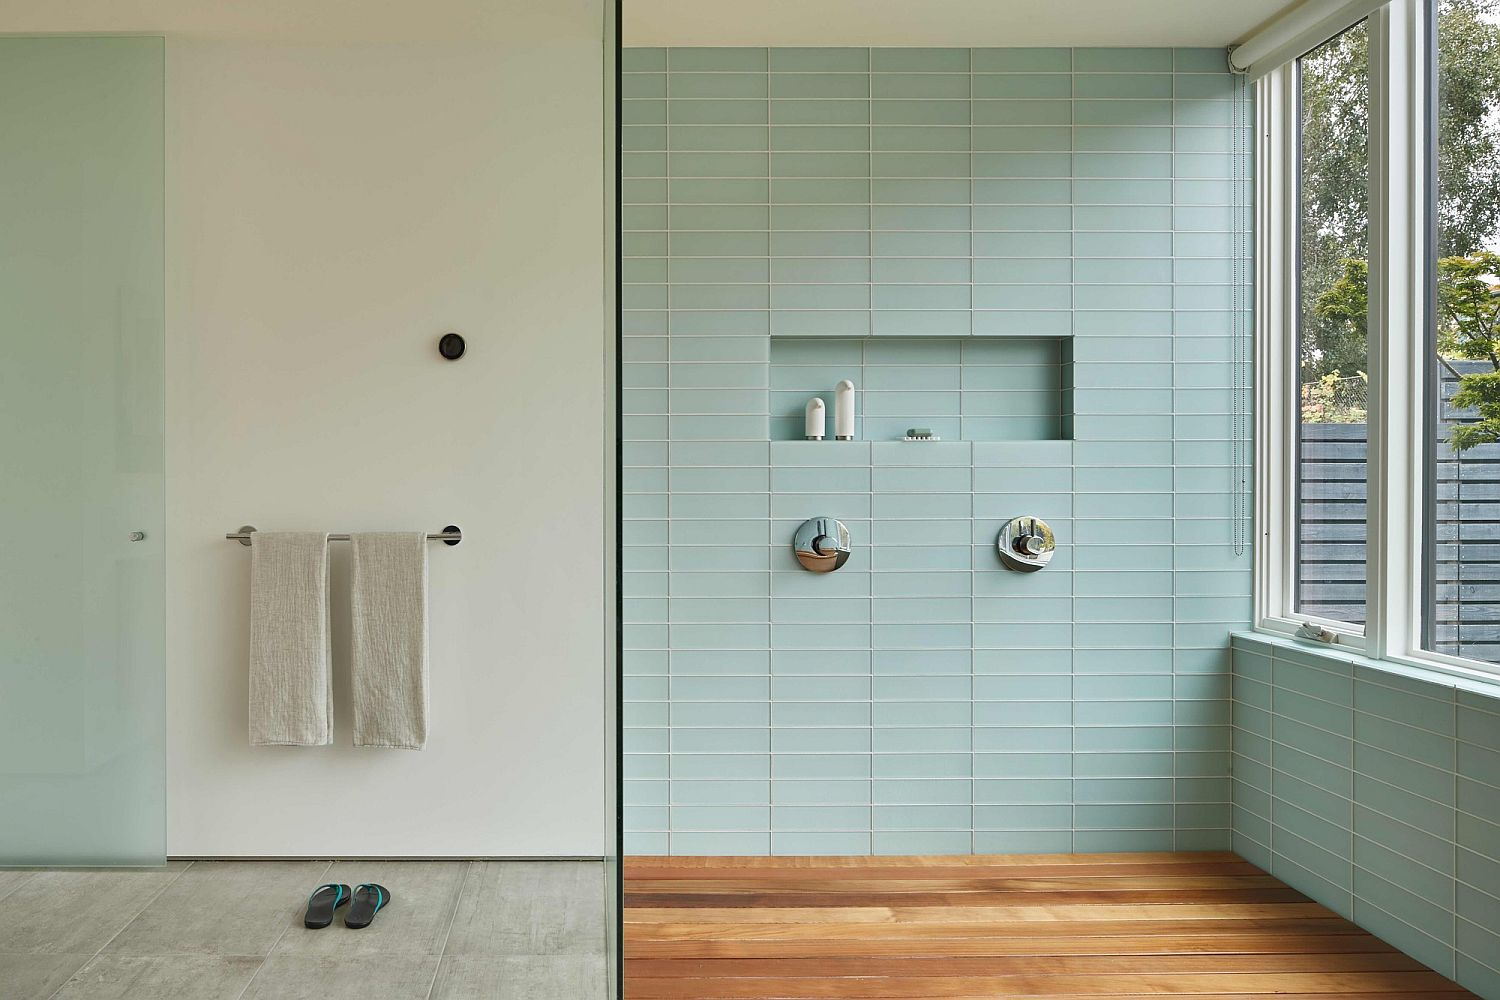 Contemporary bathroom in pastel mint and white